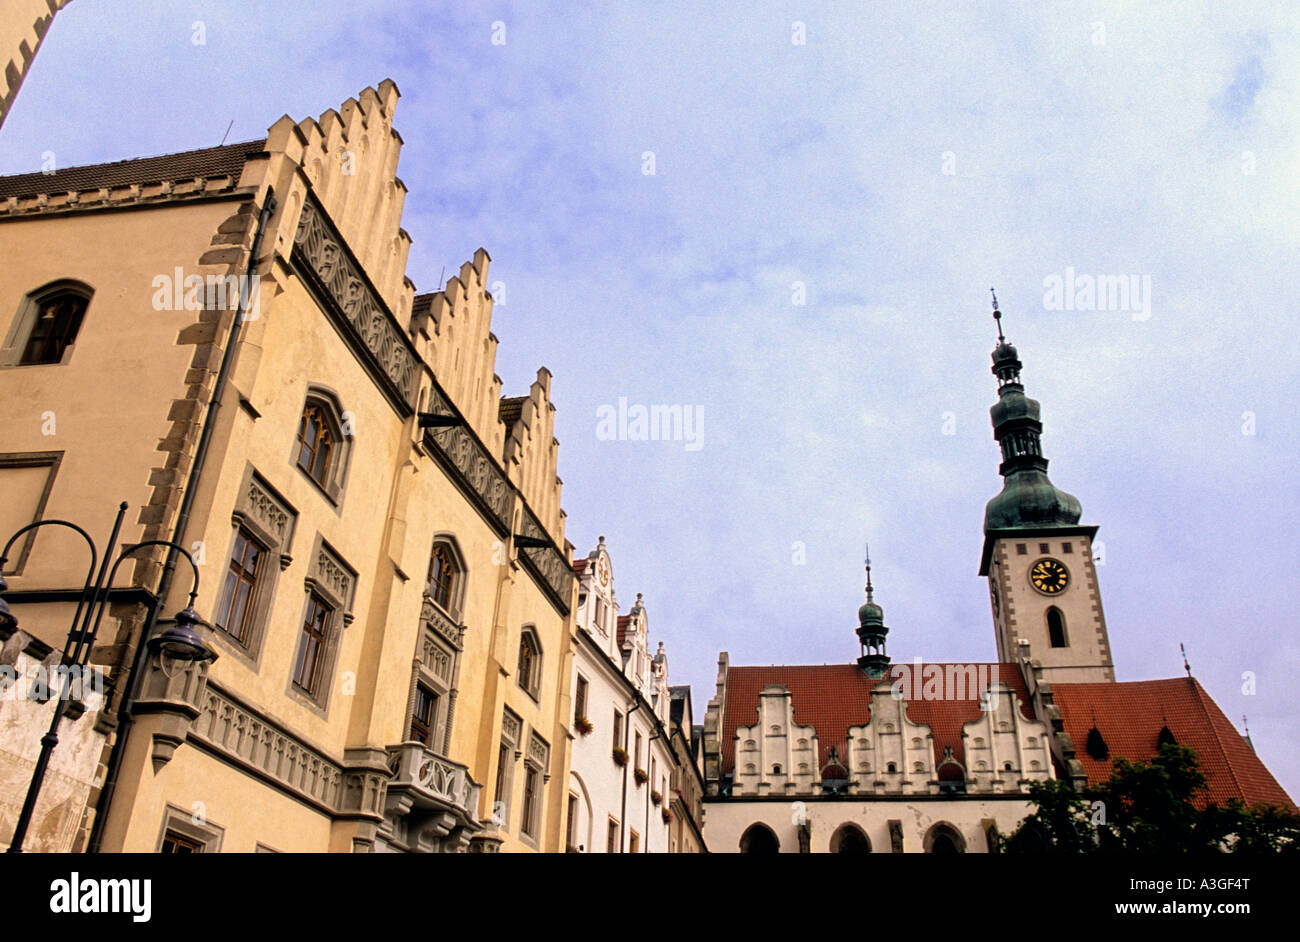 16th century Town Hall w bell tower of Dekansky kostel rising over Zizkovo Namest Central Square Tabor Czech Republic Stock Photo